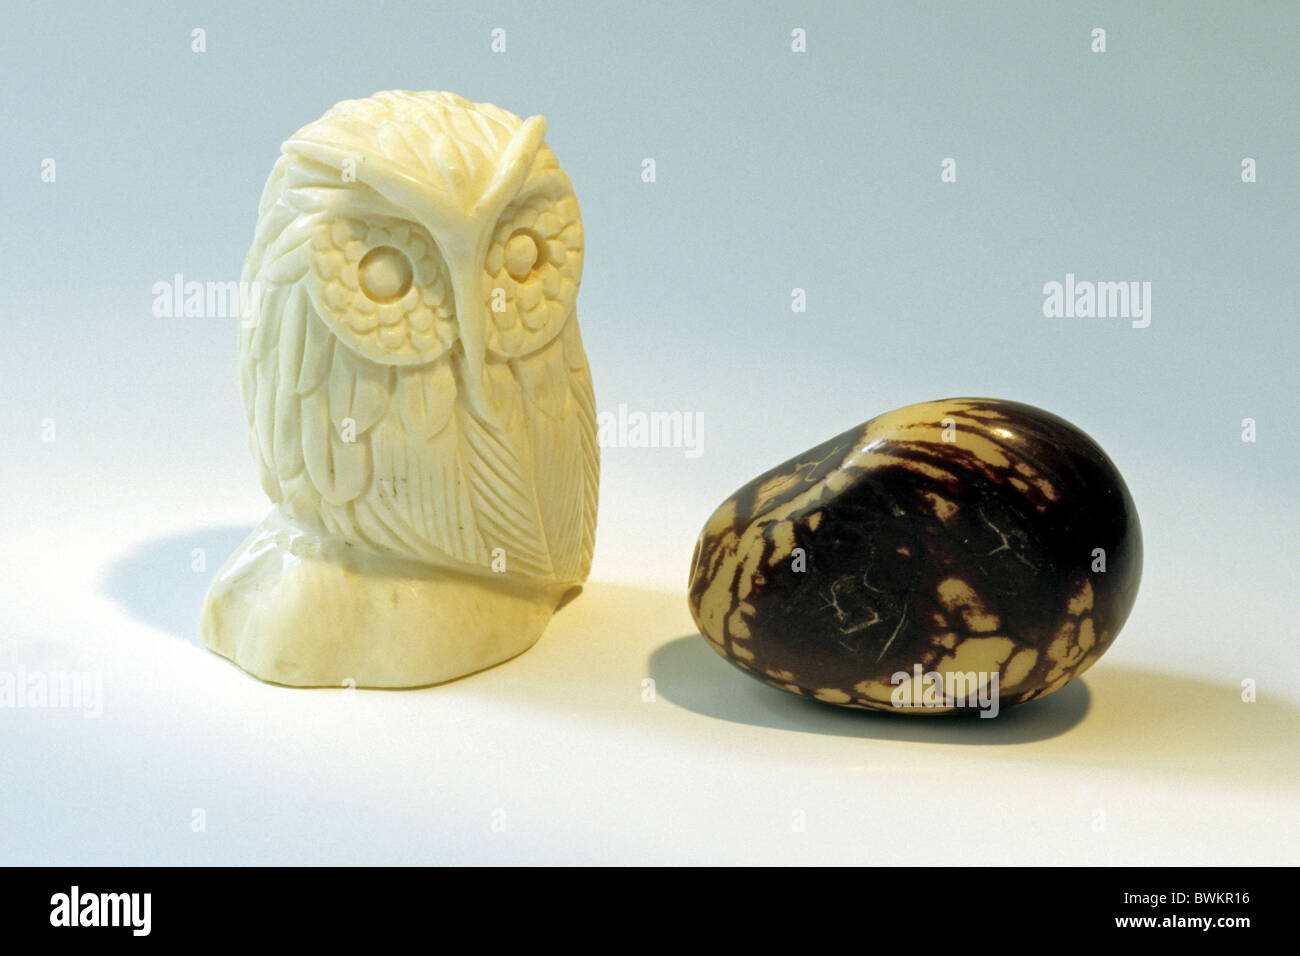 Ivory and vegetable ivory, the nut of the Ivory Palm (Phytelephas macrocarpa), studio picture. - Stock Image